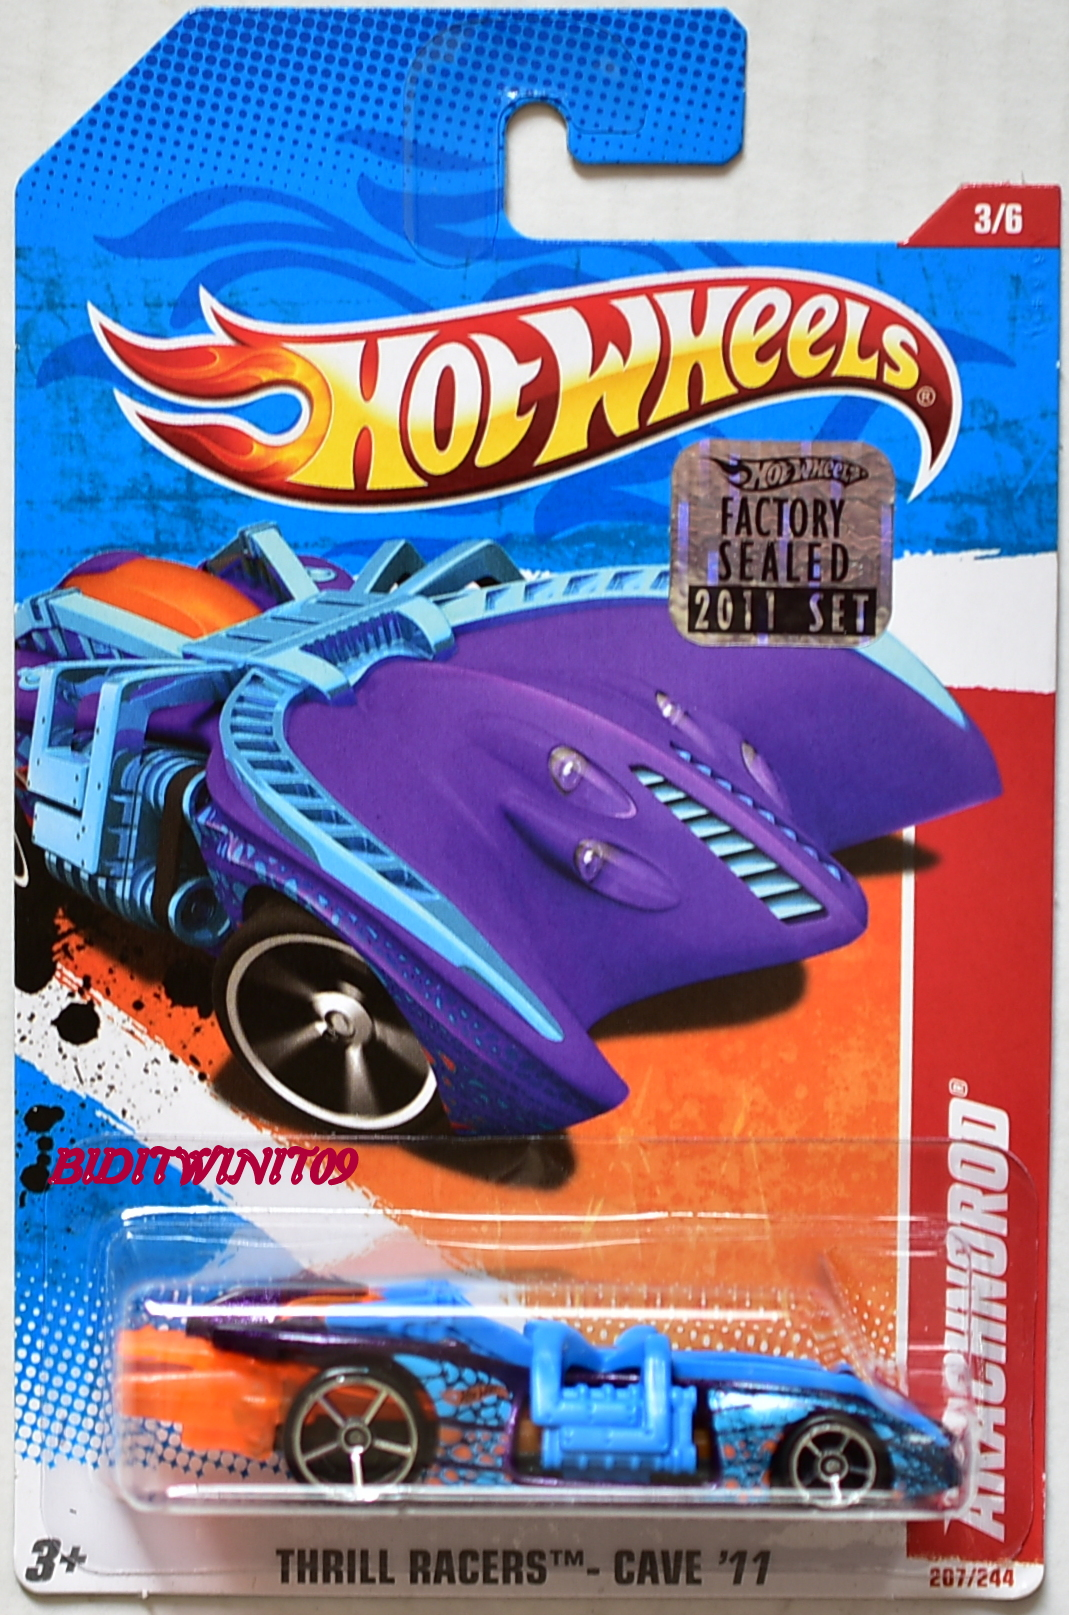 HOT WHEELS 2011 THRILL RACERS - CAVE ARACHNOROD #3/6 BLUE FACTORY SEALED